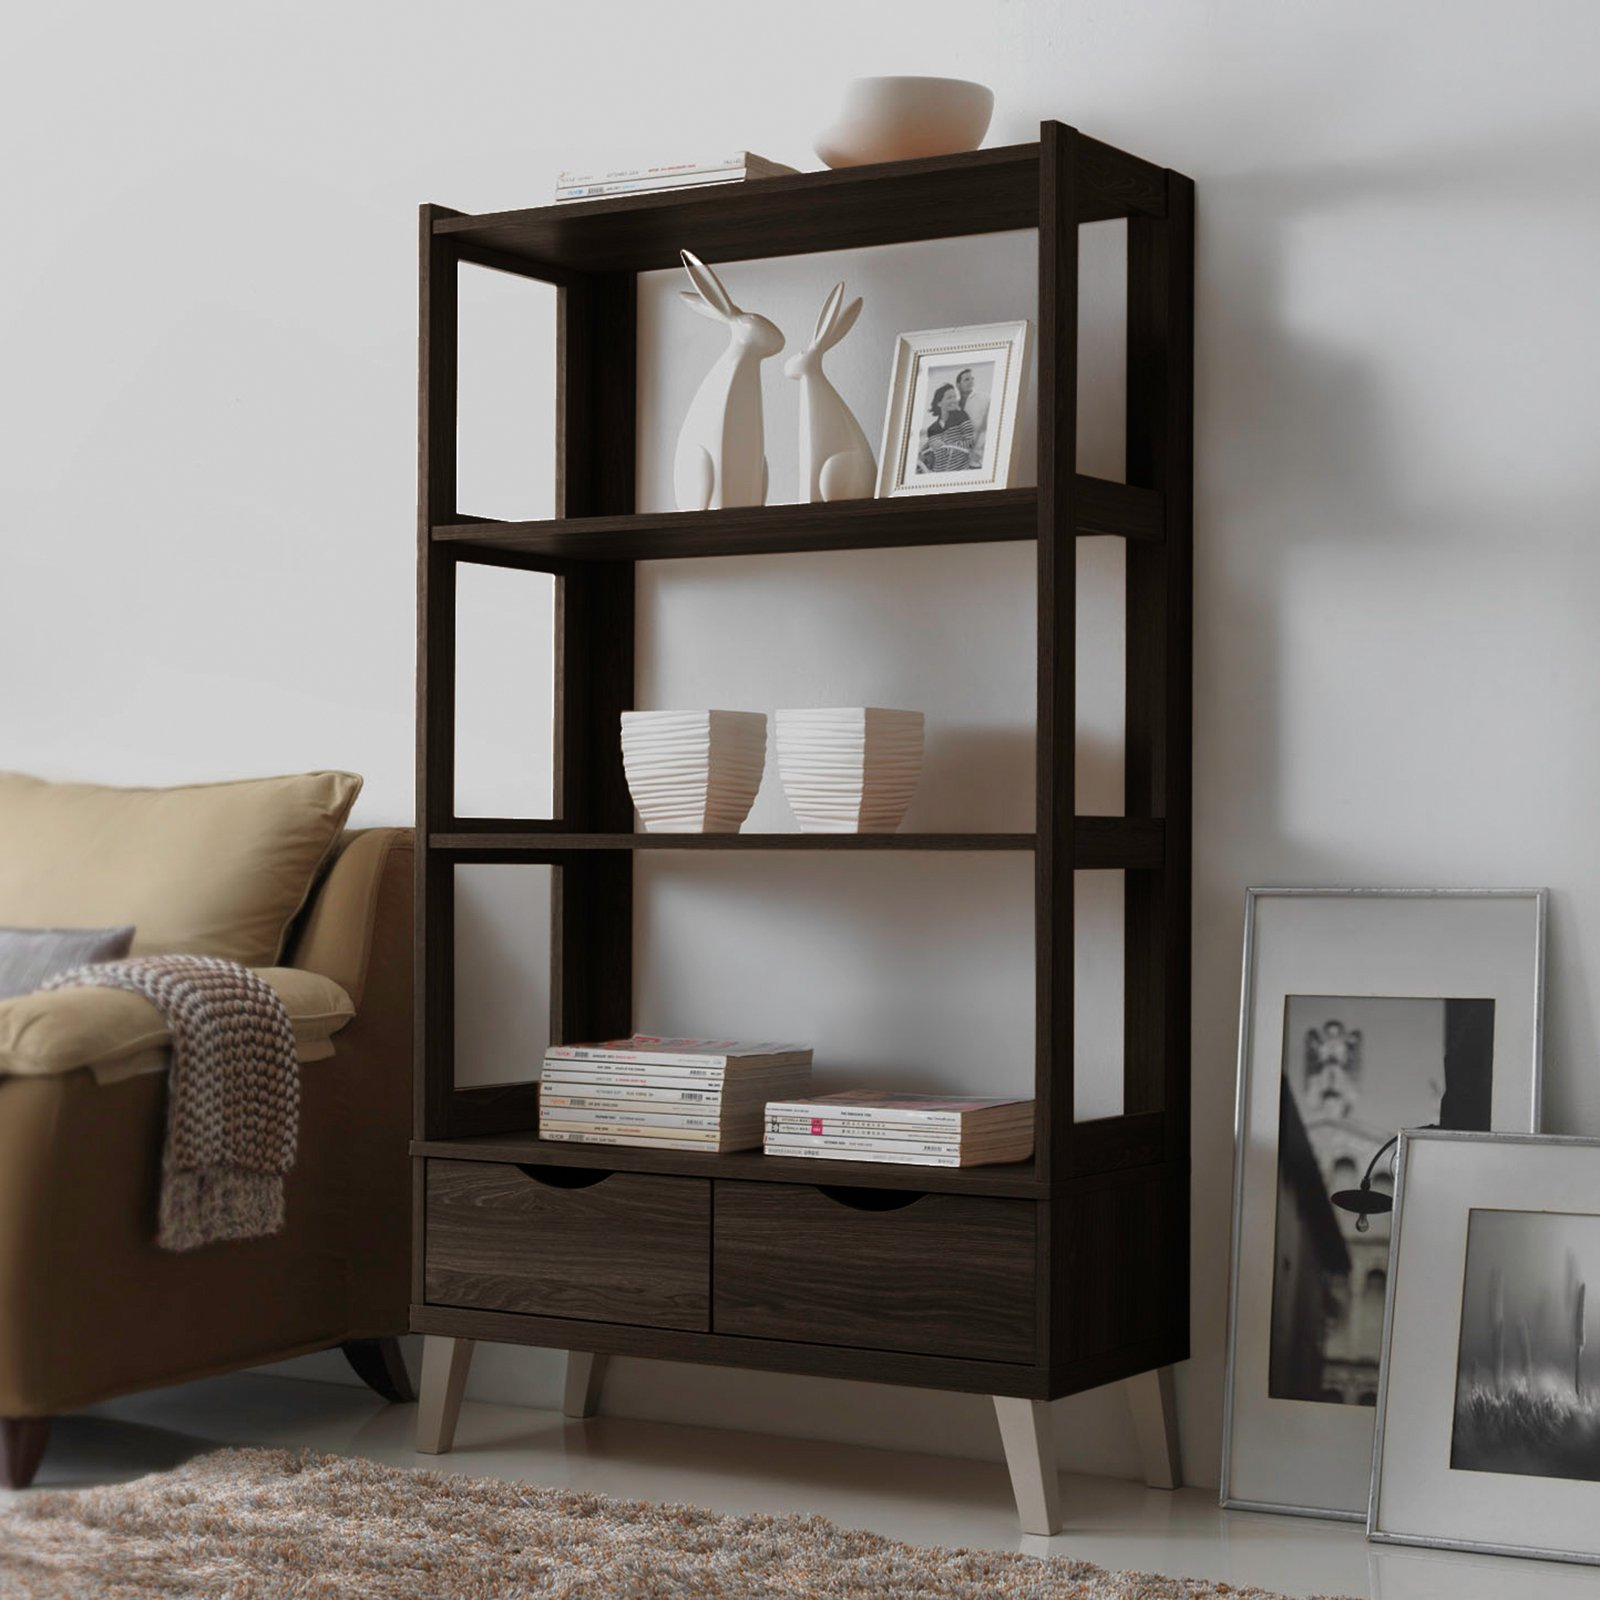 Baxton Studio Kalien Leaning Bookcase with 2 Drawers